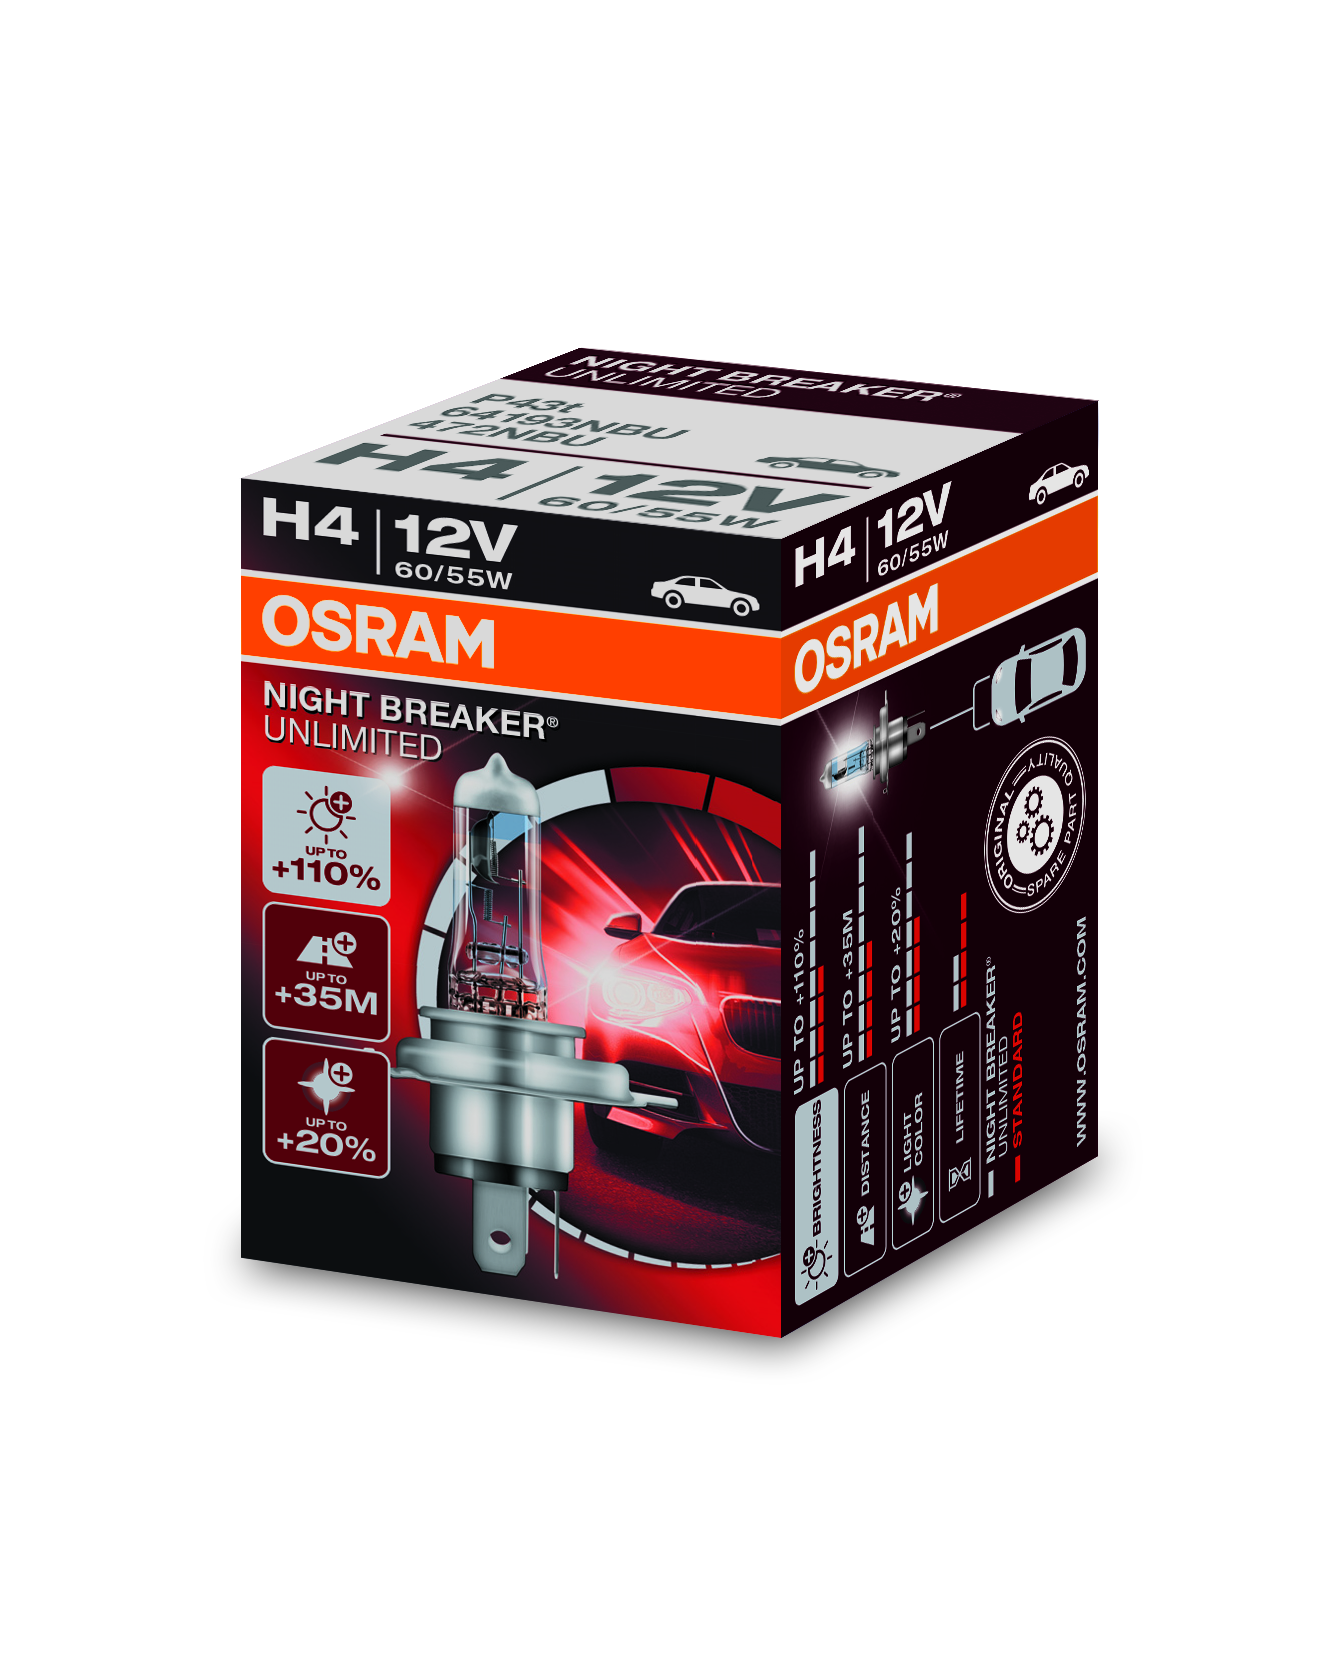 Osram halogenová žárovka, NIGHT BREAKER UNLIMITED, H4, P43t, 12V, 60/55W, 64193NBU